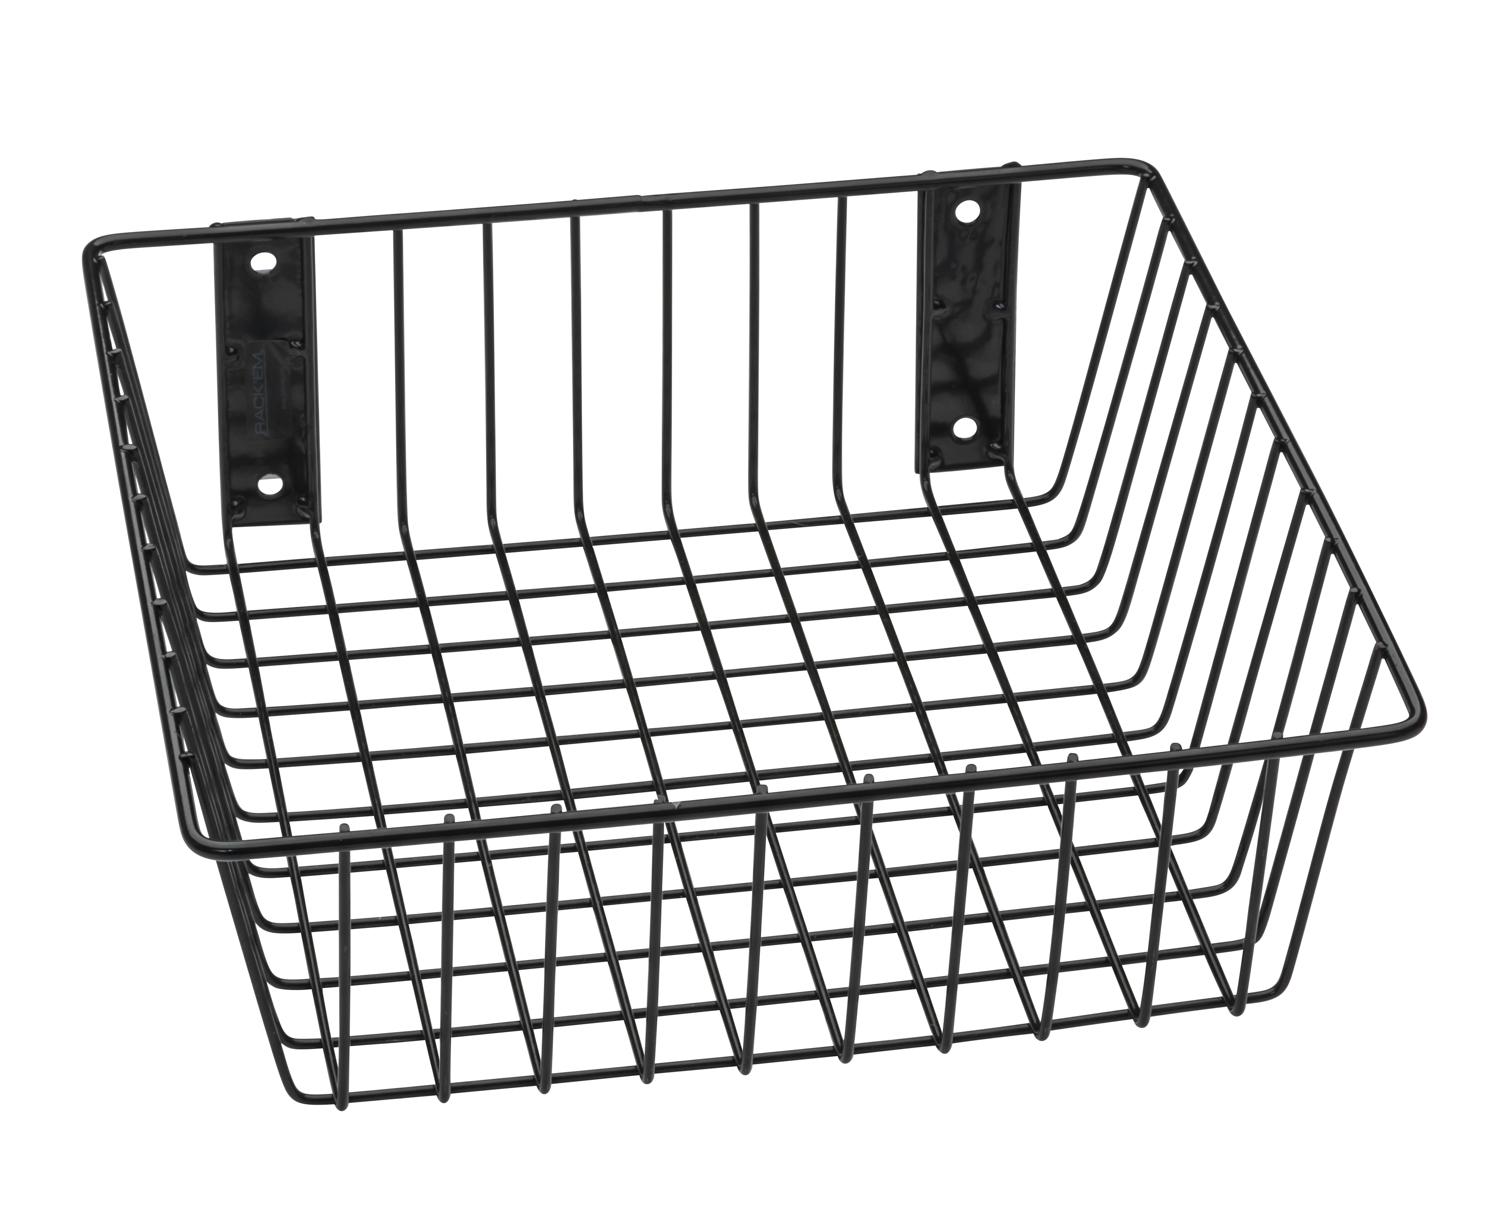 Universal Black Wire Basket For Your Storage And Organizational Needs  (9078 B)